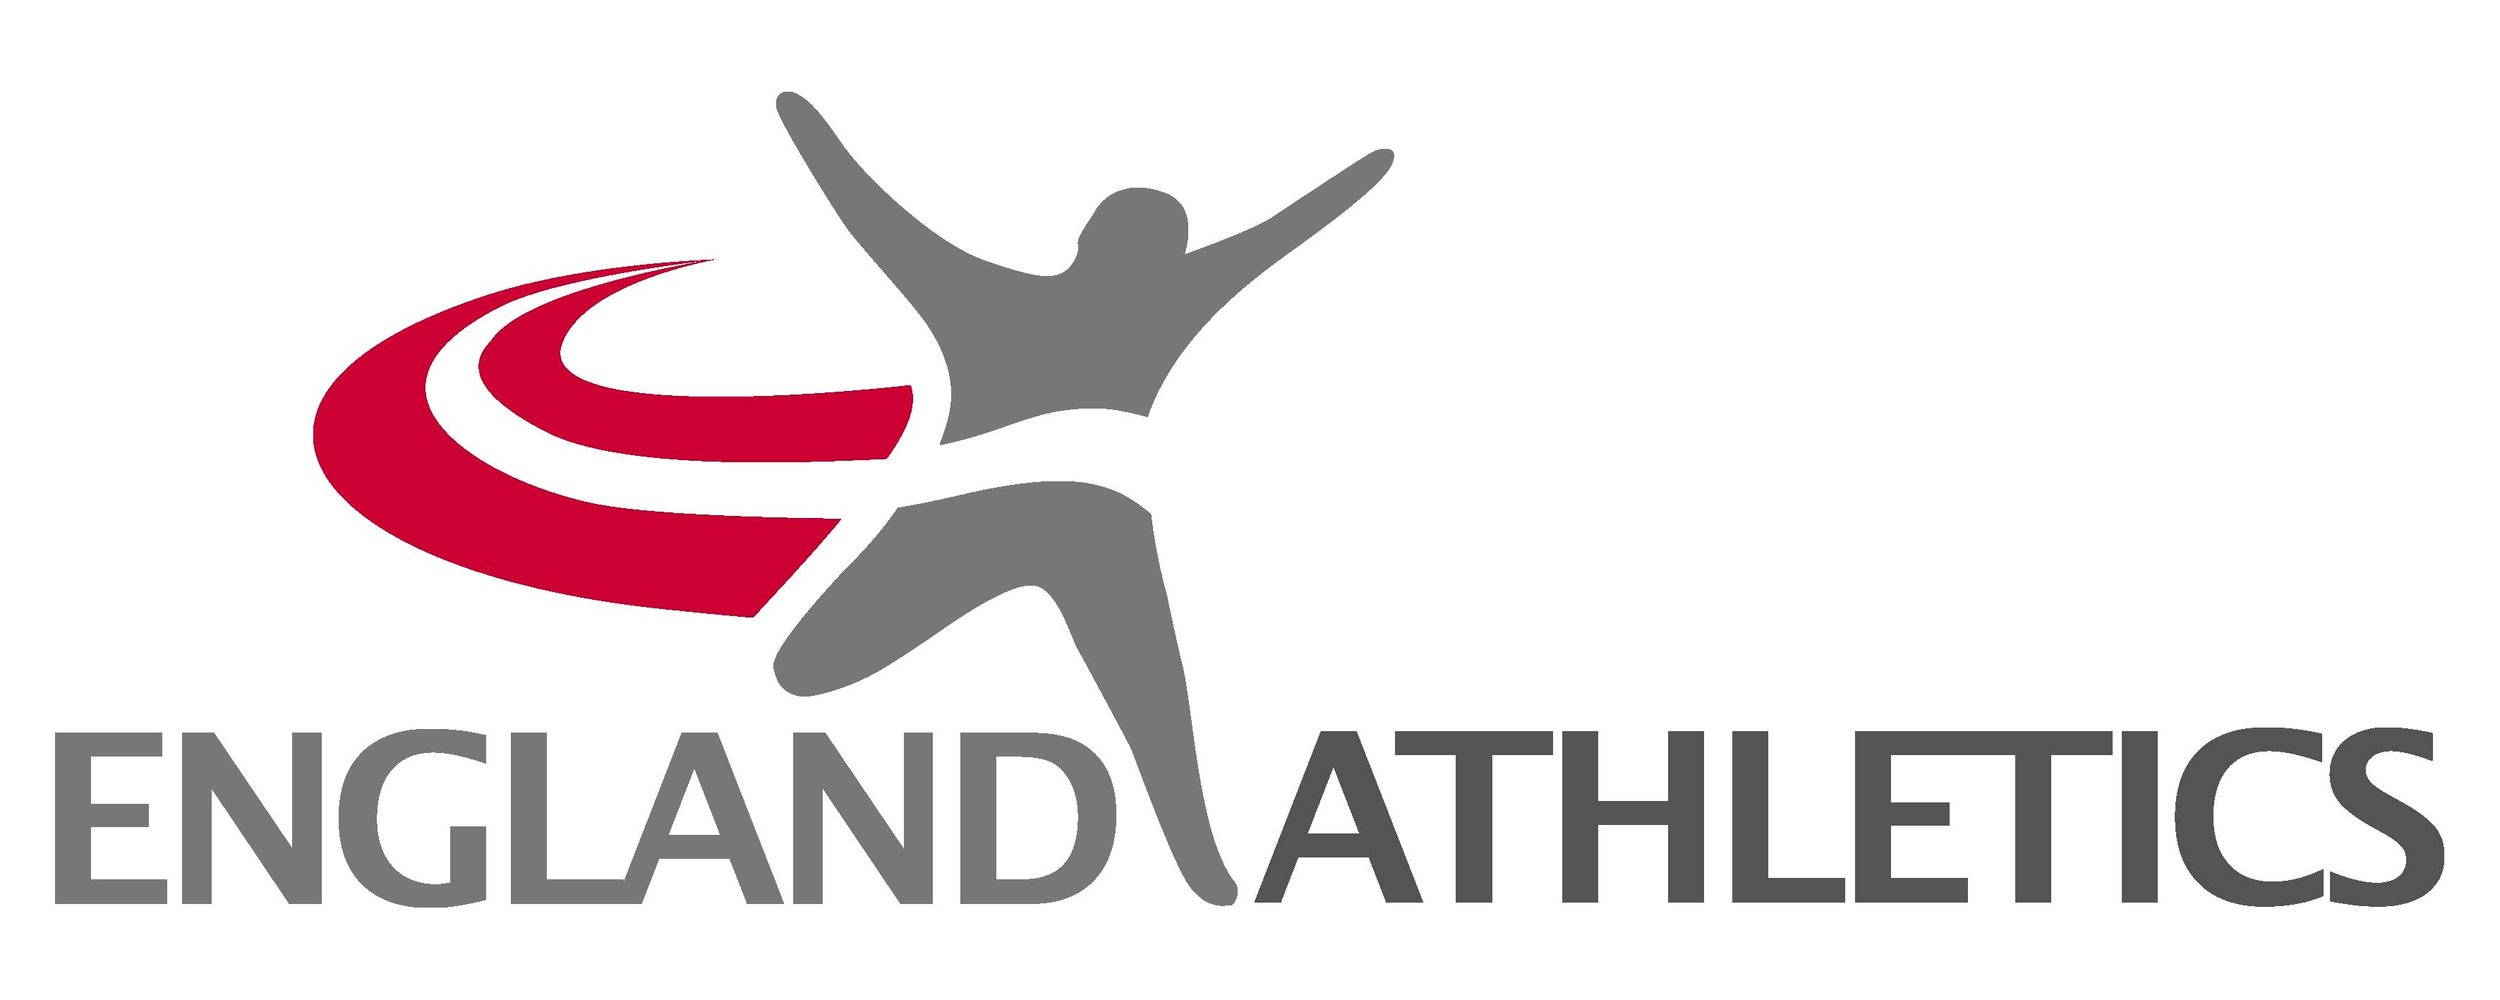 england athletics logo (1).jpg